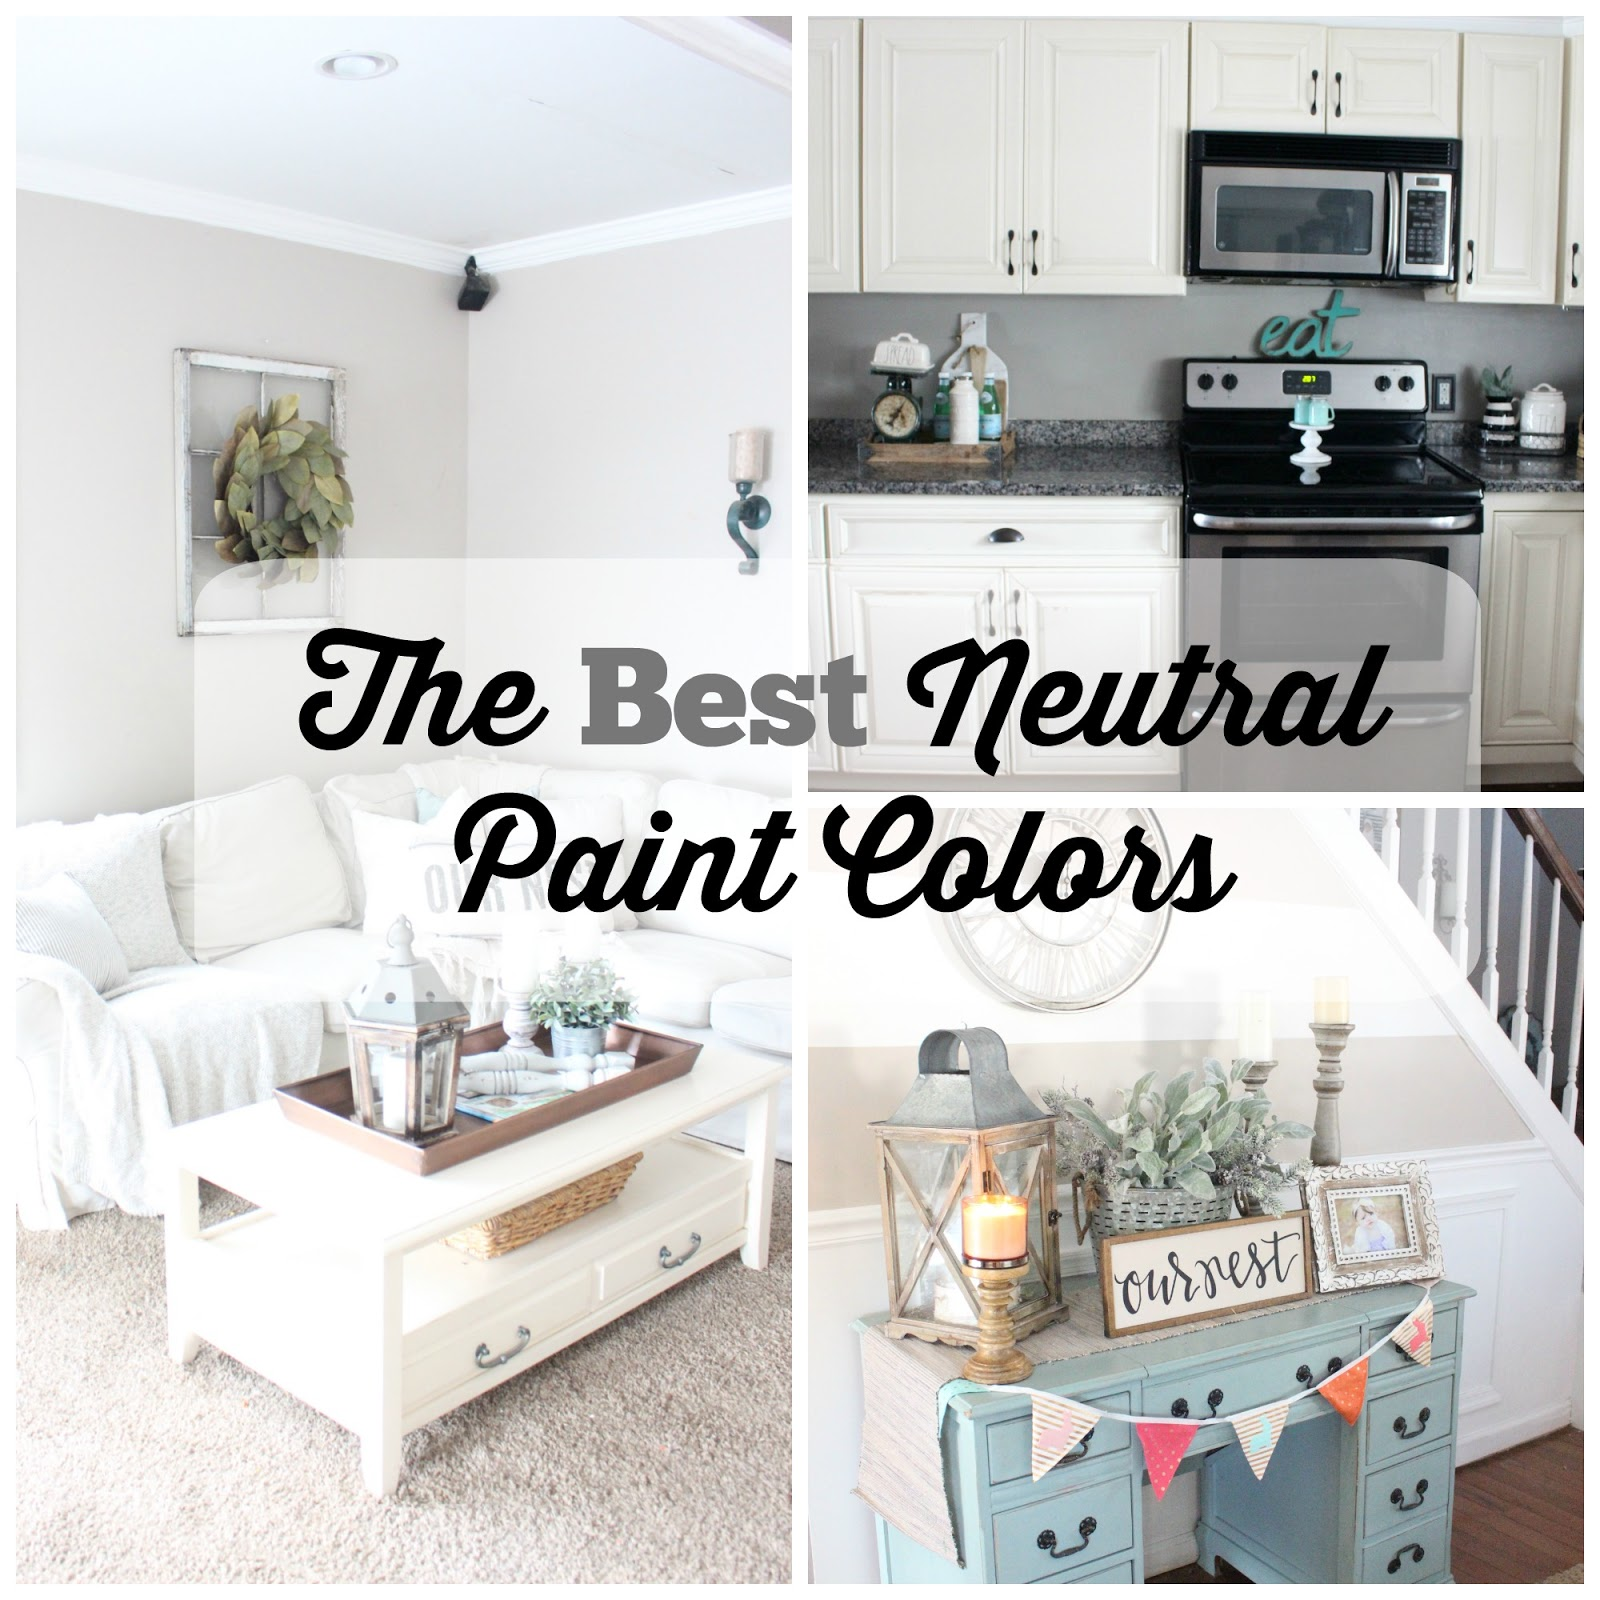 Best Neutral Paint Colors For Small Living Room Rooms With Dark Wood Furniture The Glam Farmhouse You Might Also Like